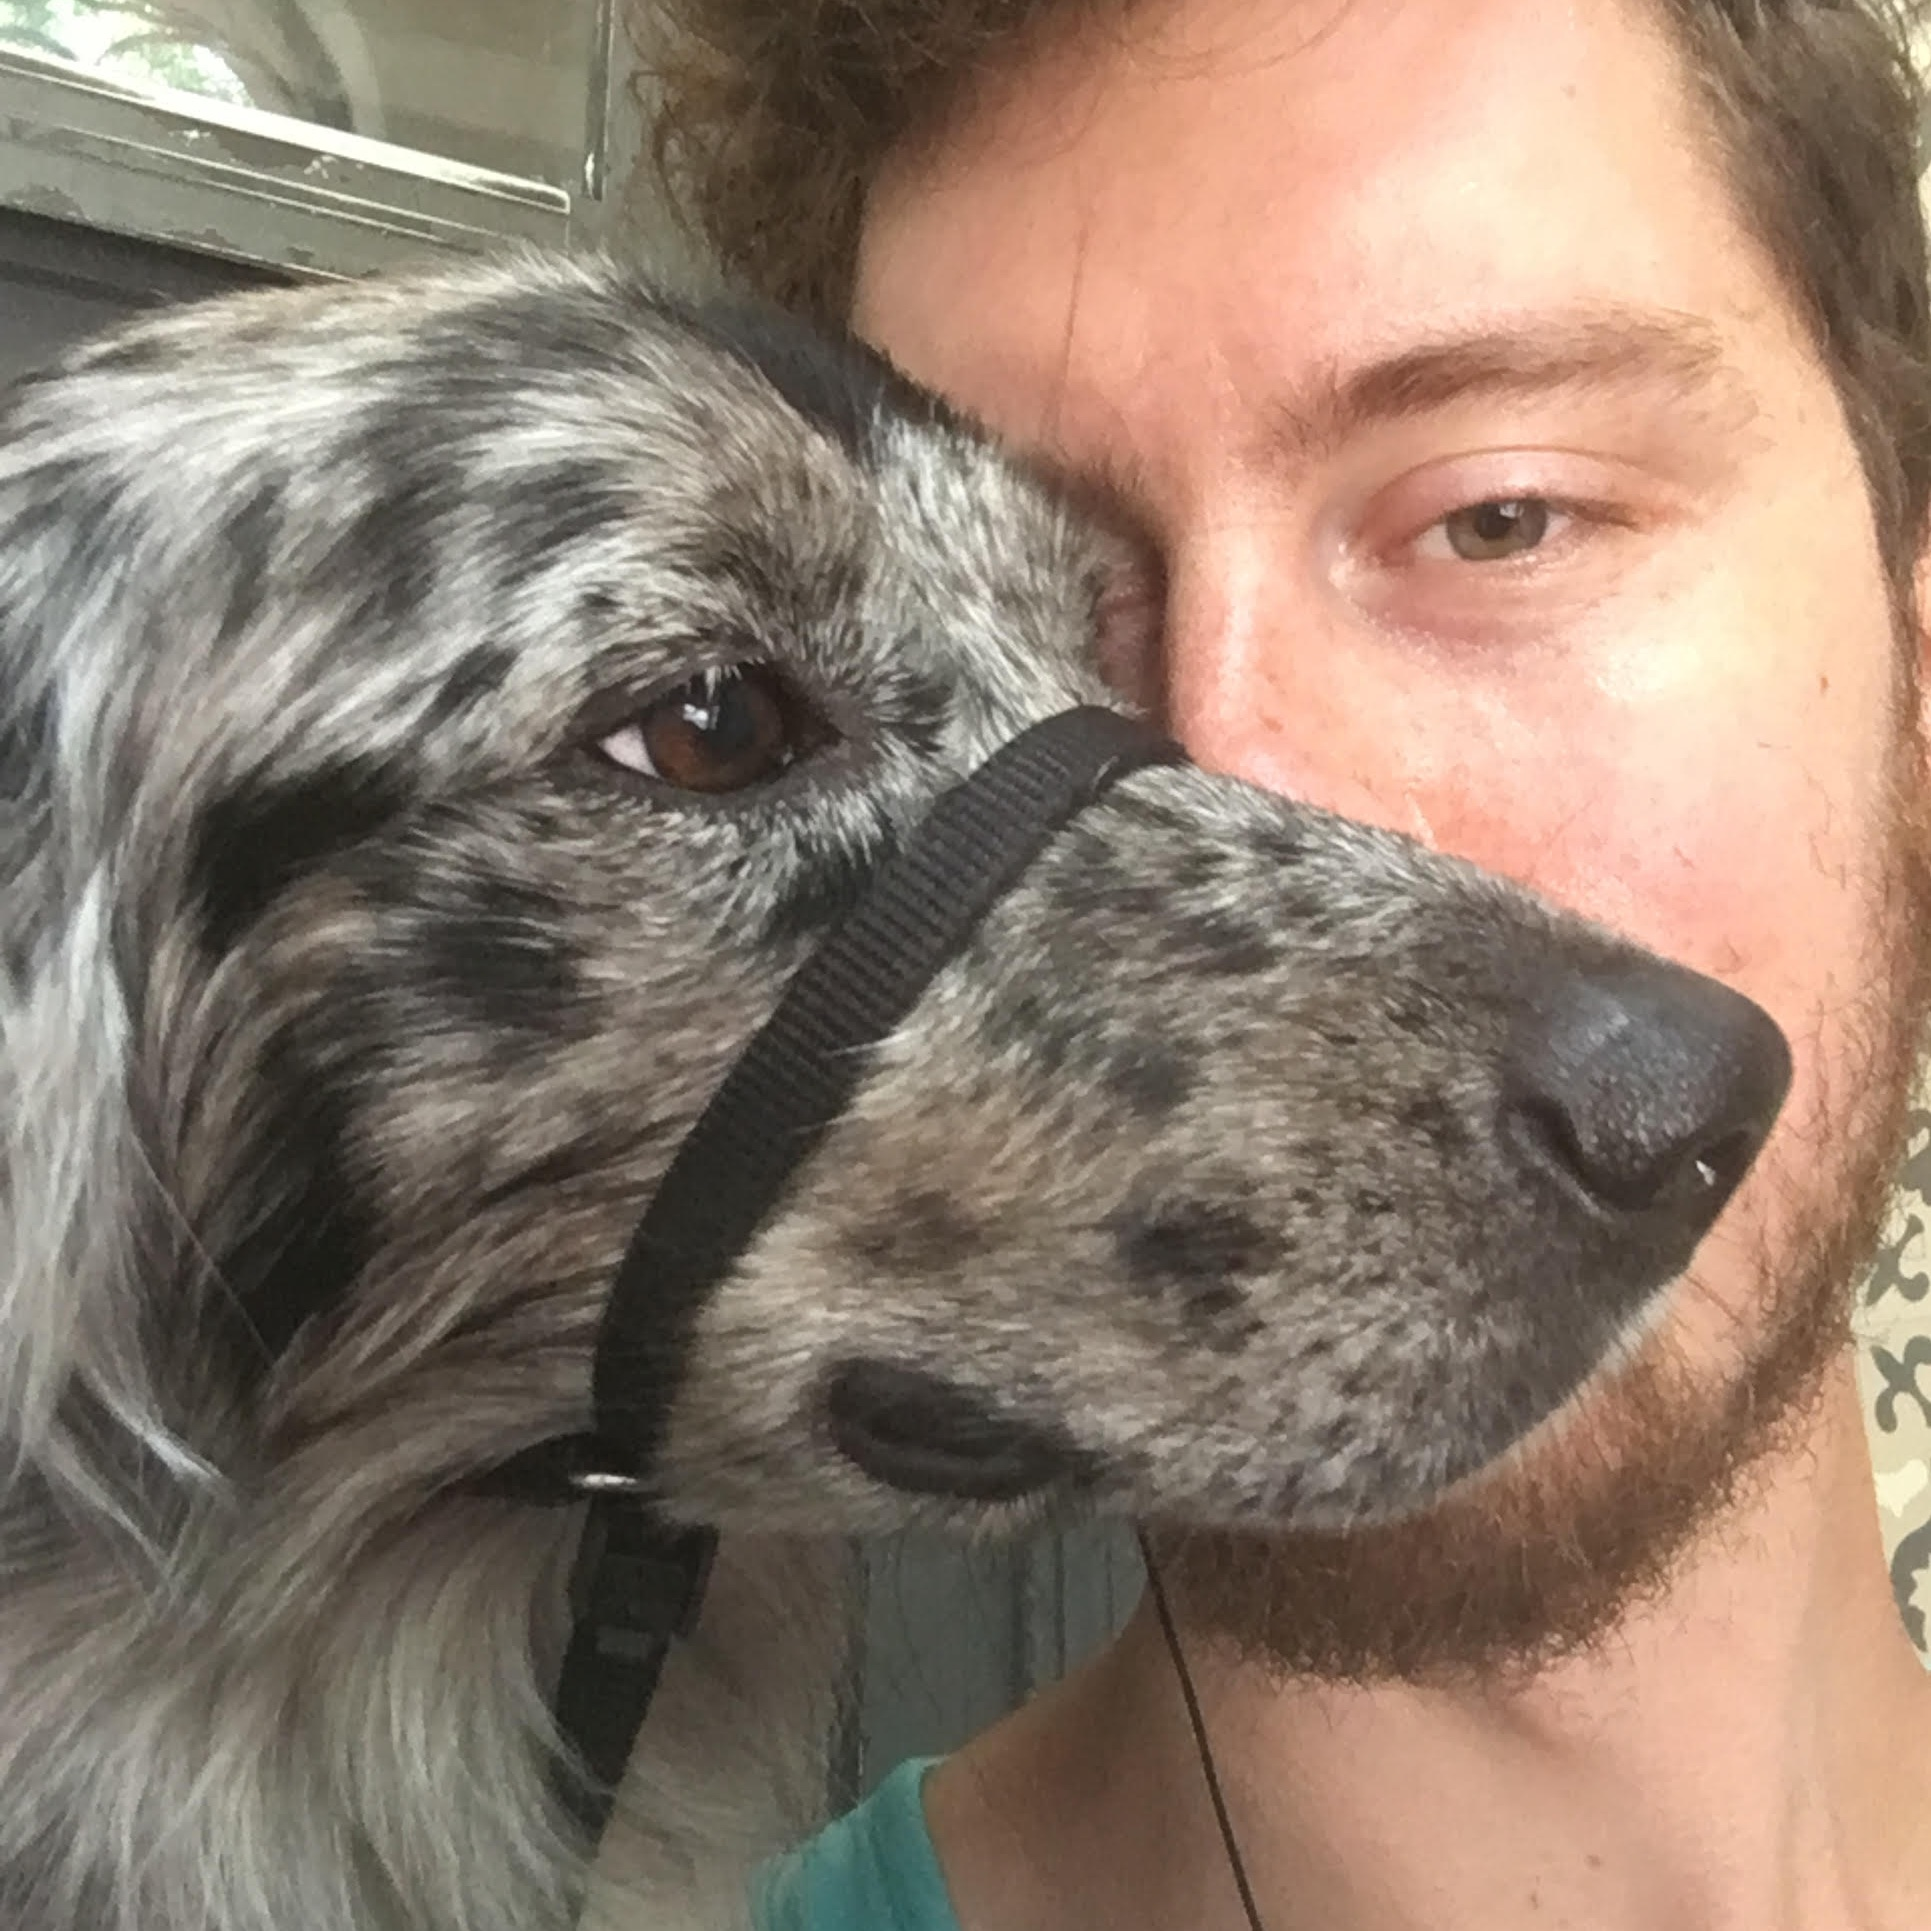 Justin - Justin is a writer and musician living in Ridgewood. He doesn't have a dog of his own but he did teach his cat to sit and give low-fives!